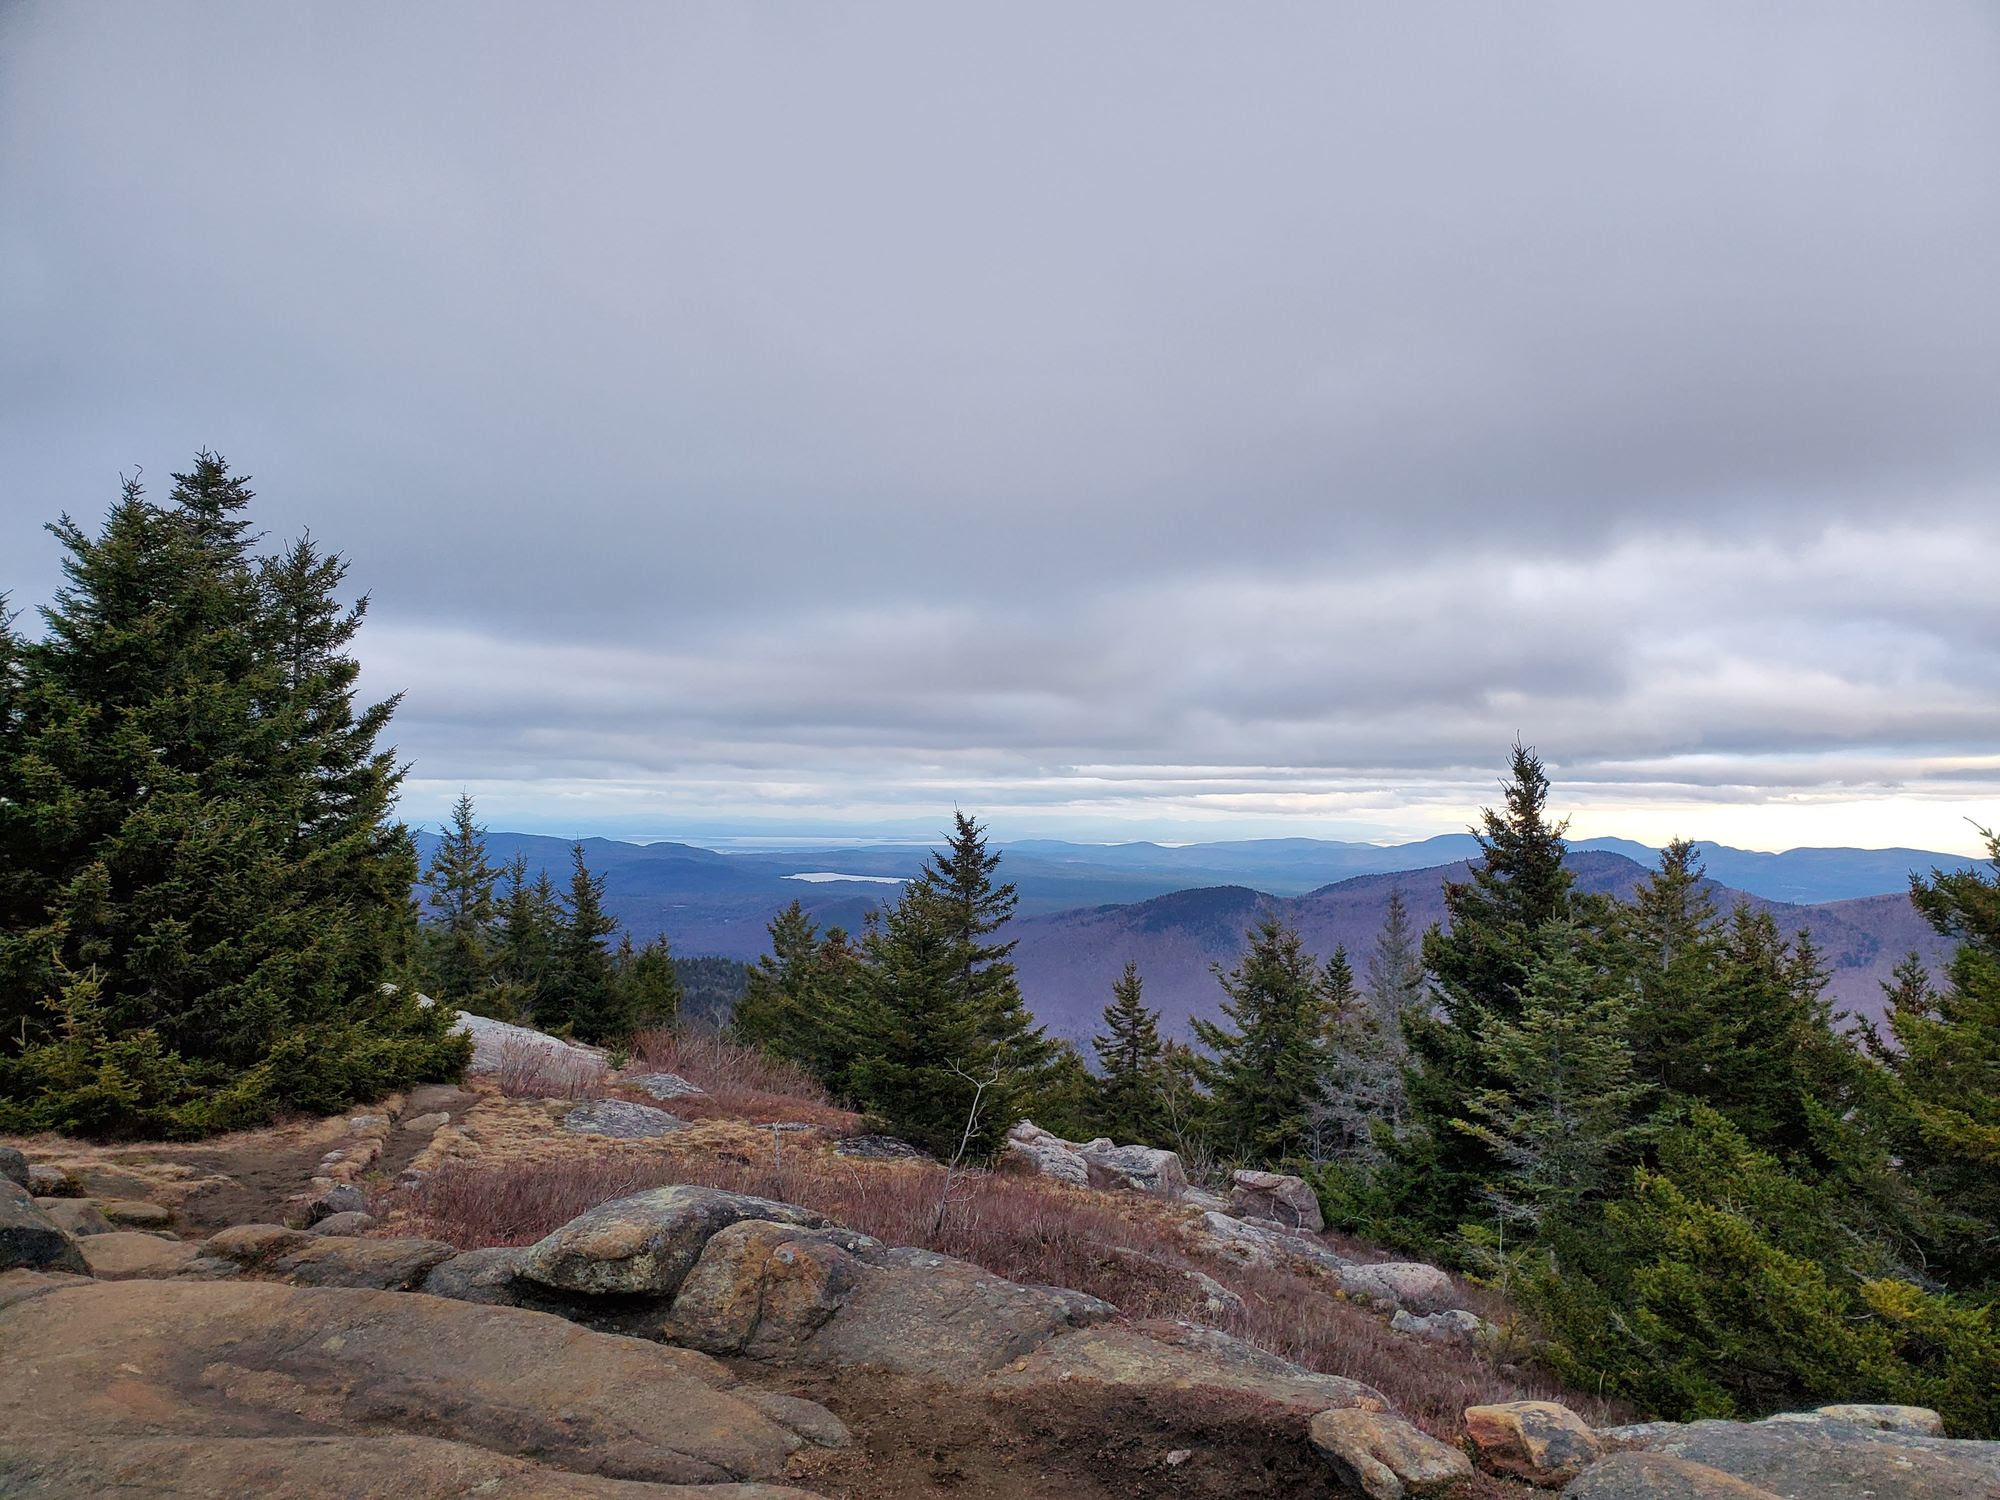 View from summit of Adirondack Mountain